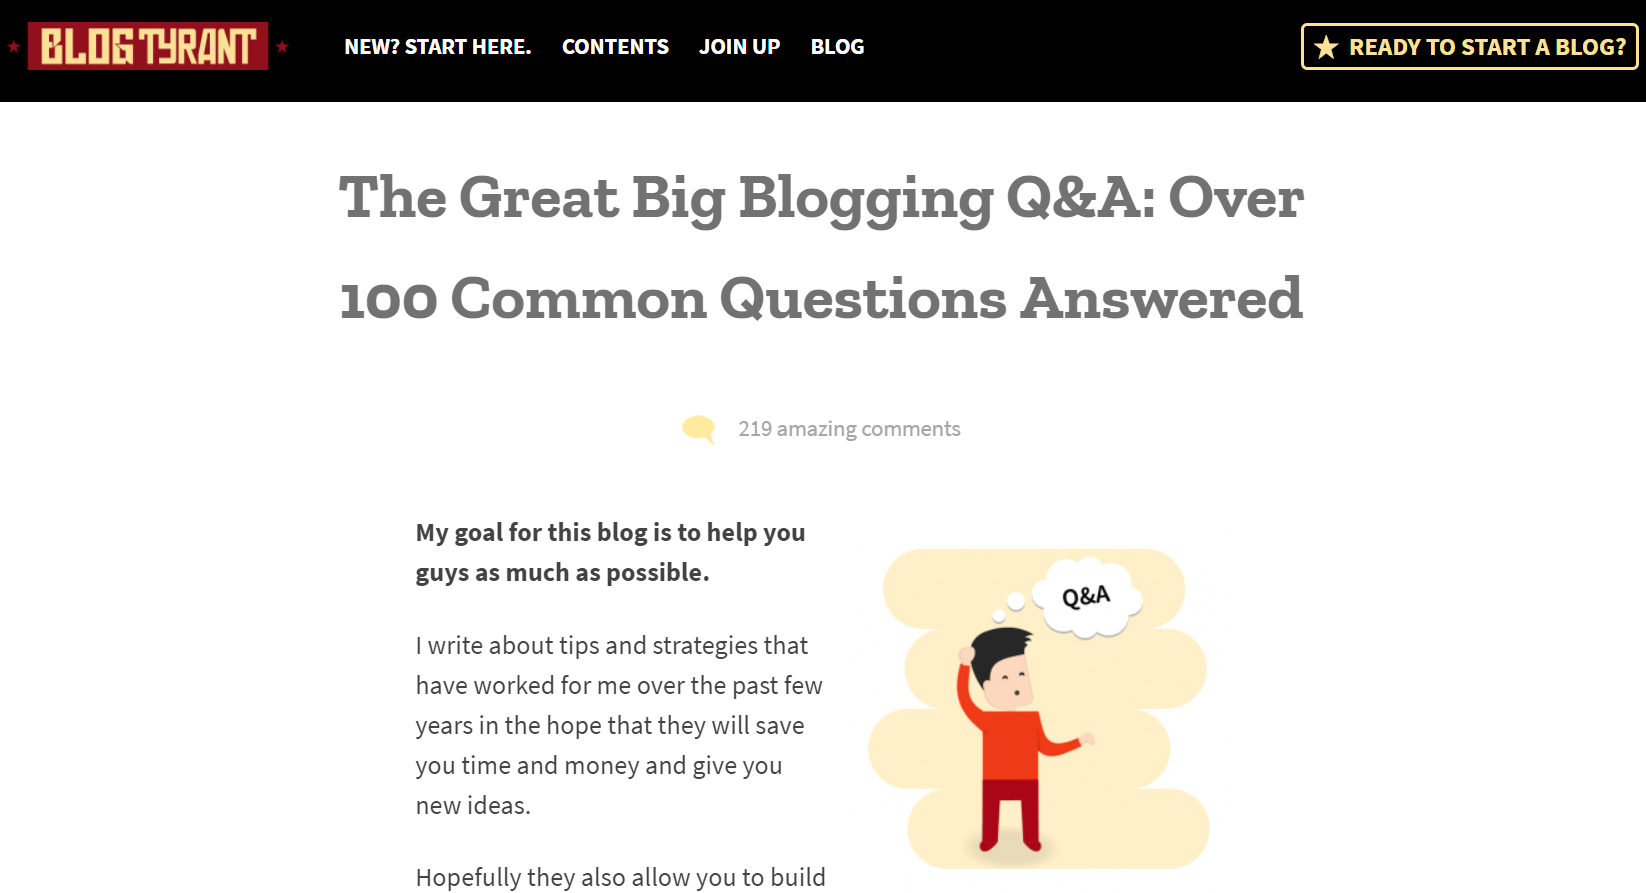 Blog Tyrant - The Great Big Blogging Q&A